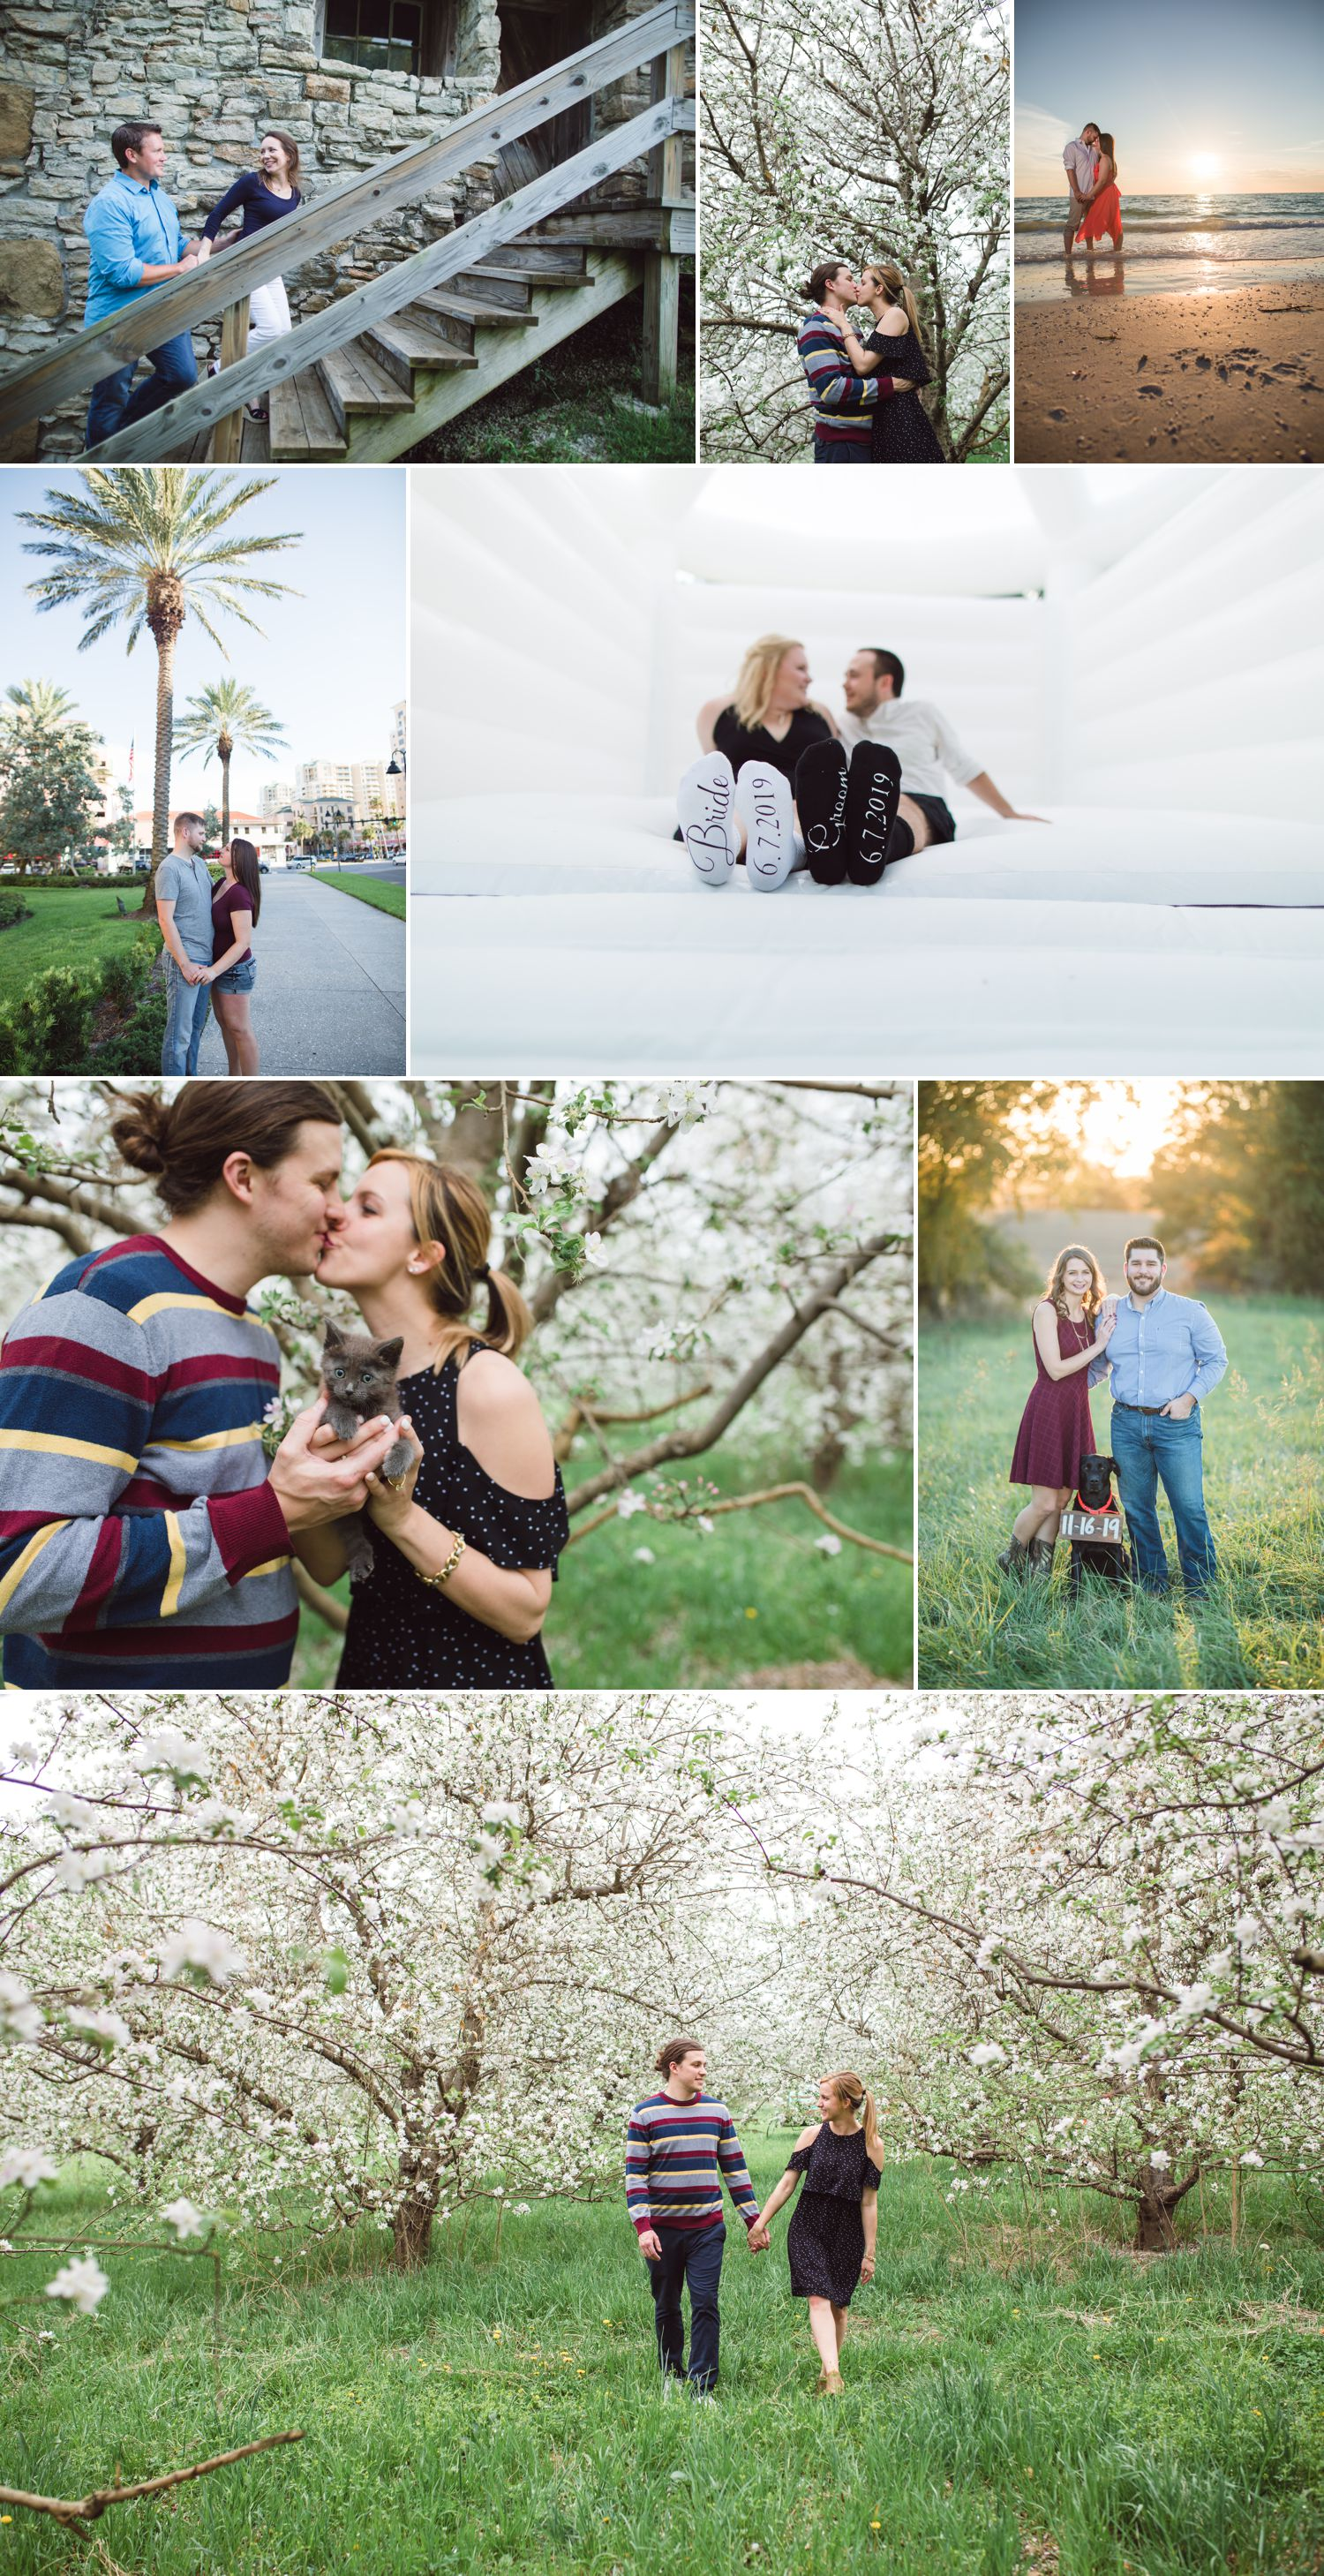 Best locations for engagement photos in kansas city